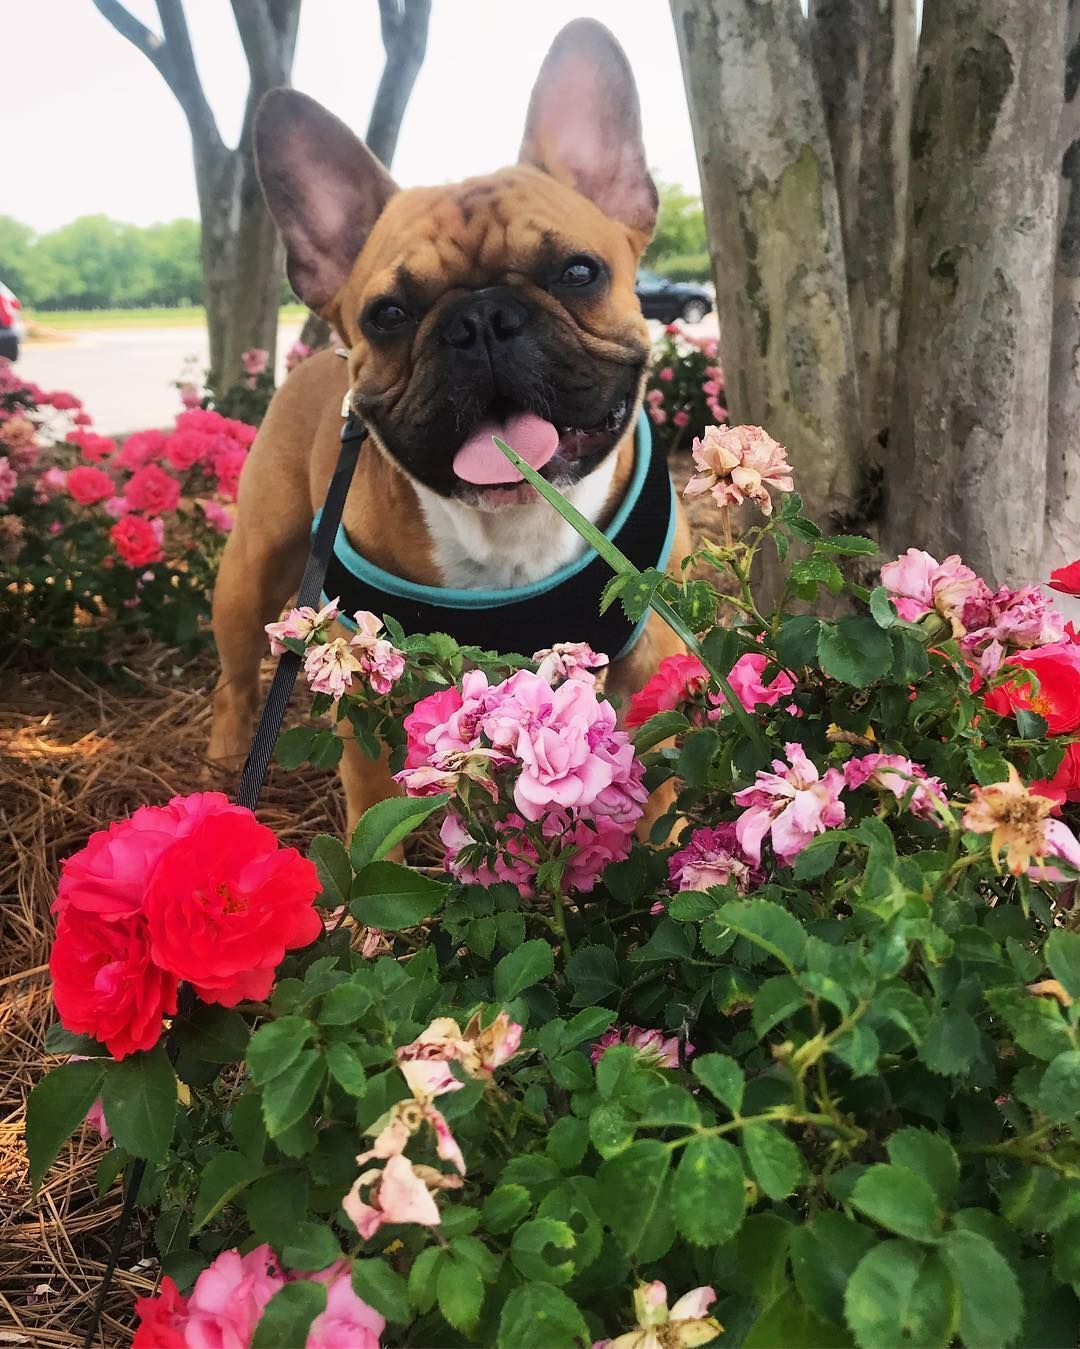 Traveling and road trips with pets a dog friendly pit